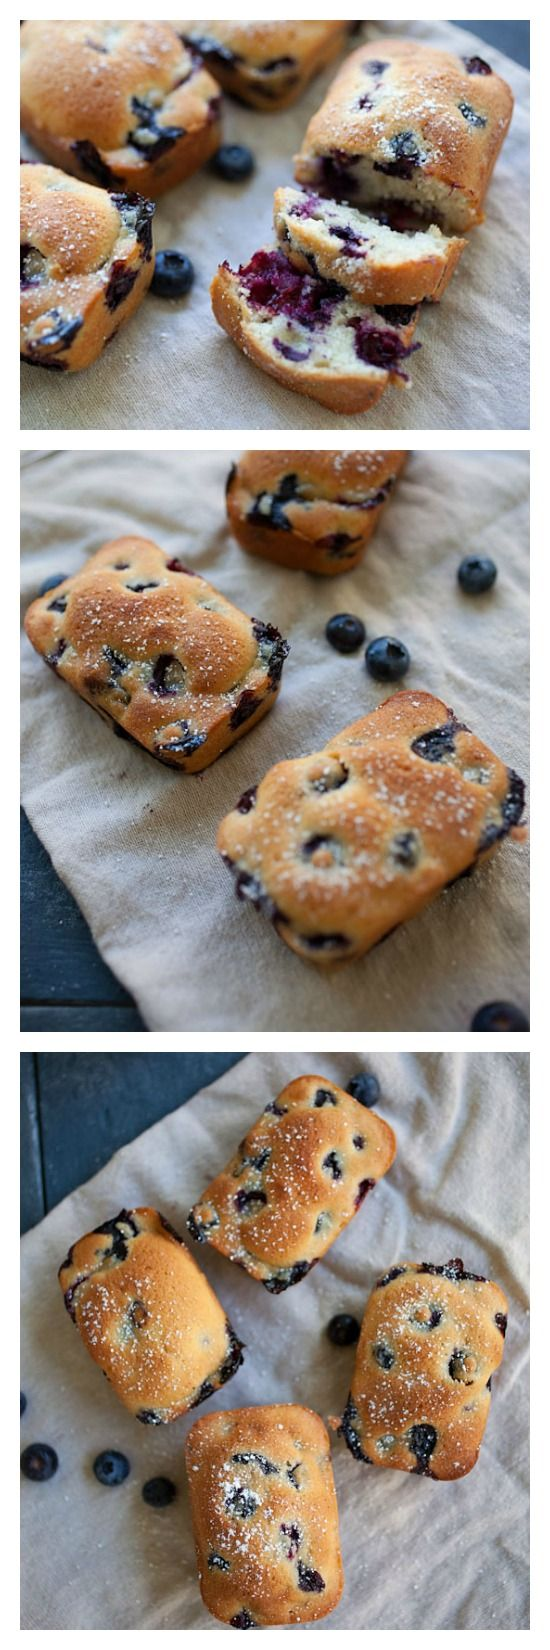 Mini Blueberry Cake. Everything tastes so much better when they are mini-me size. This yummy blueberry cake is perfect anytime of the day! | rasamalaysia.com